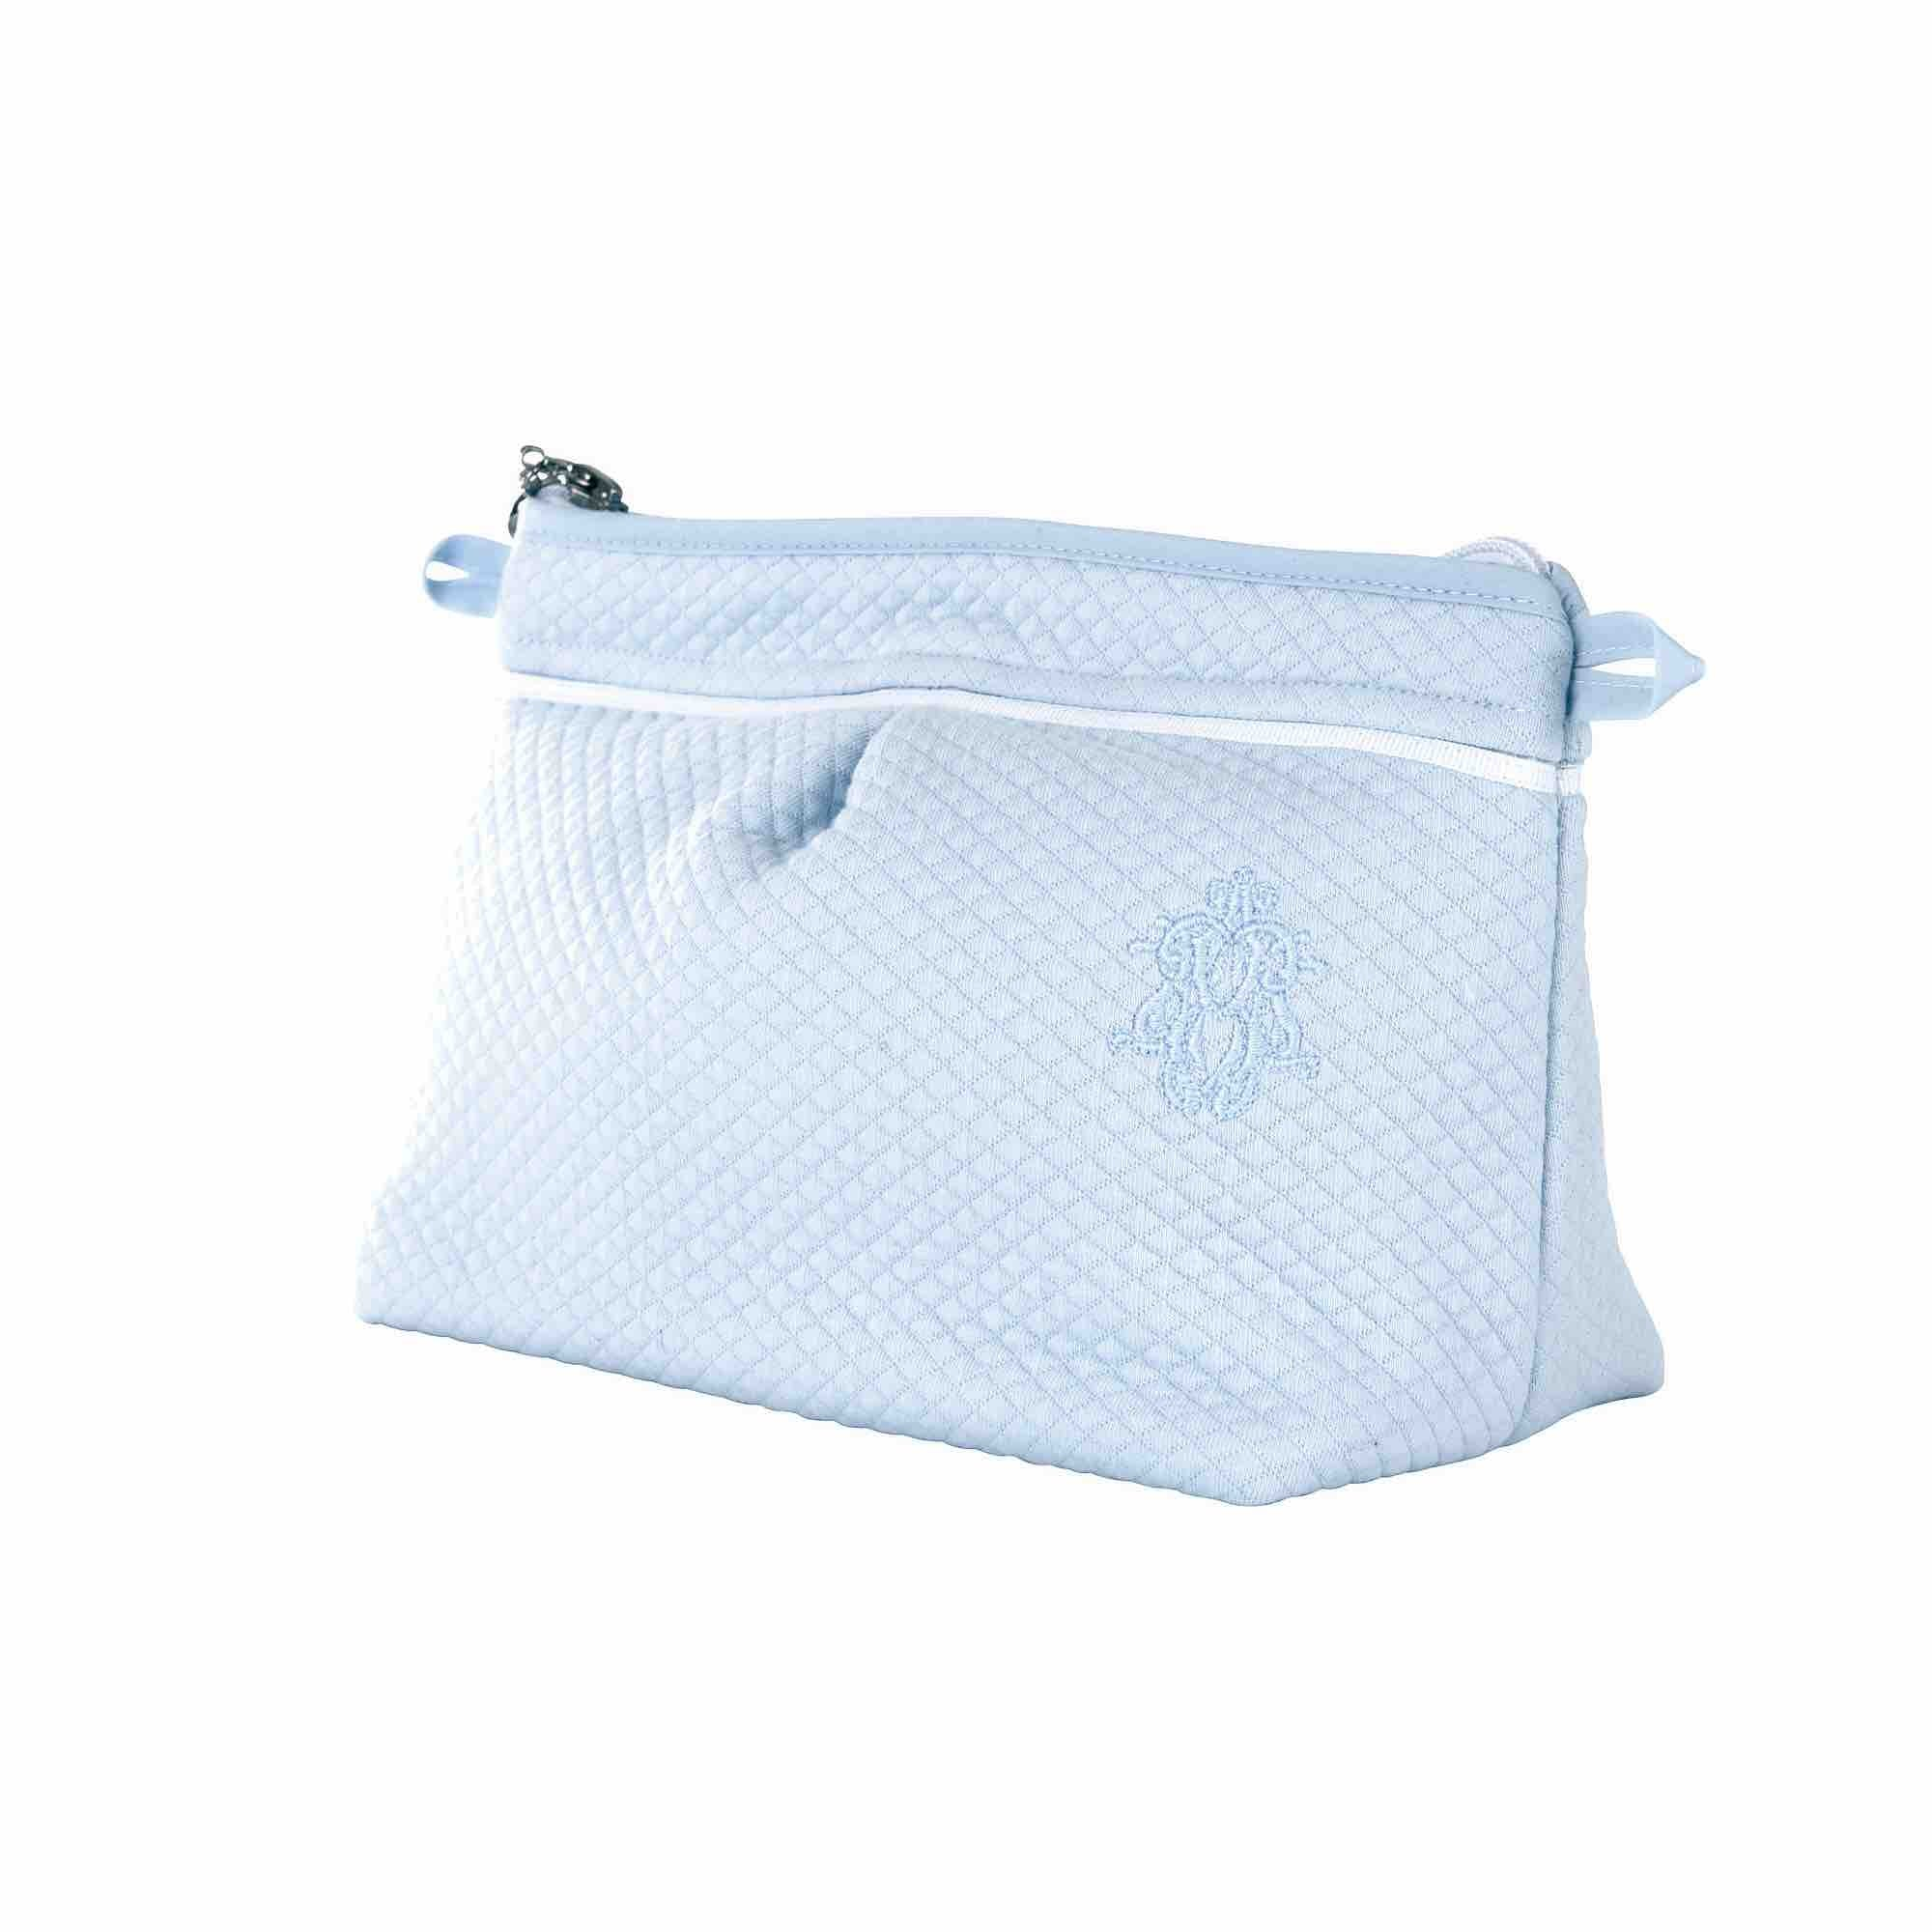 Theophile & Patachou Toiletry Bag - Royal Blue